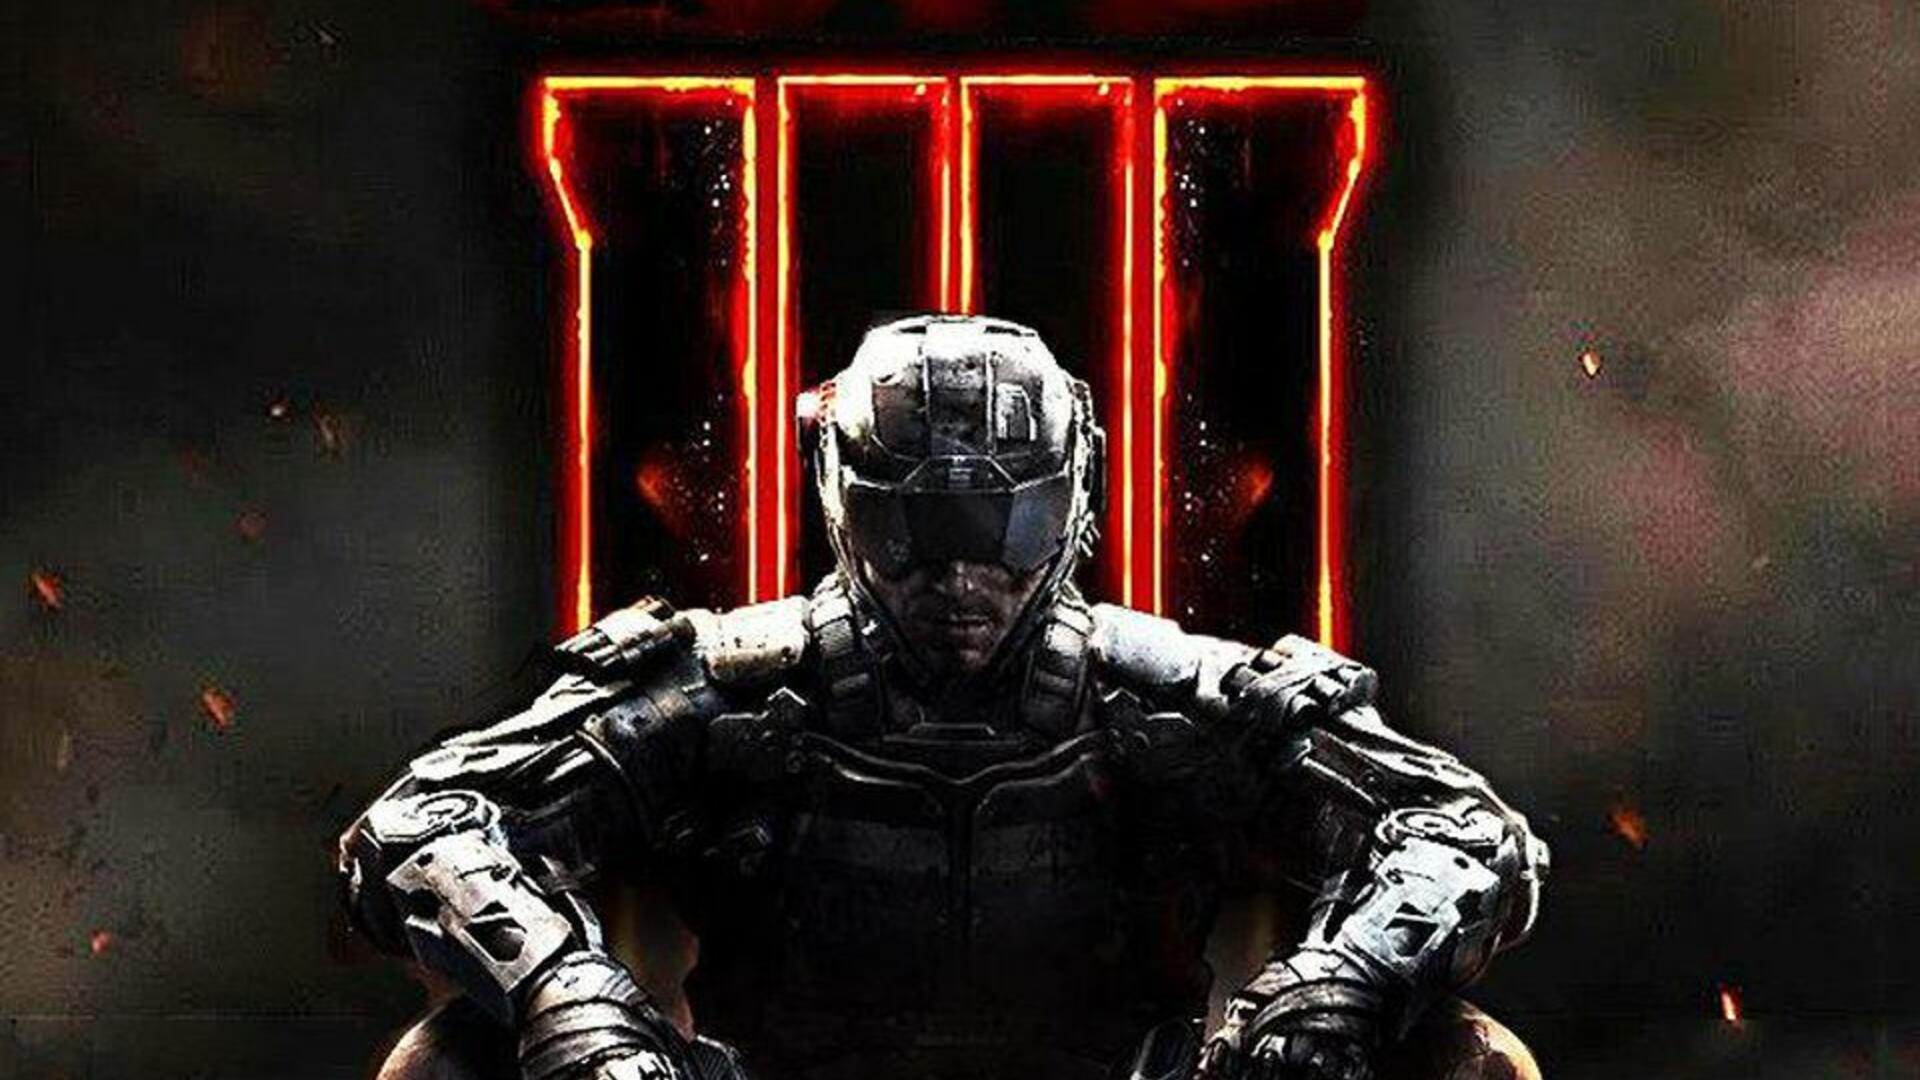 All of Today's Call of Duty Black Ops 4 Announcements: Battle Royale, Zombies, No Single Player